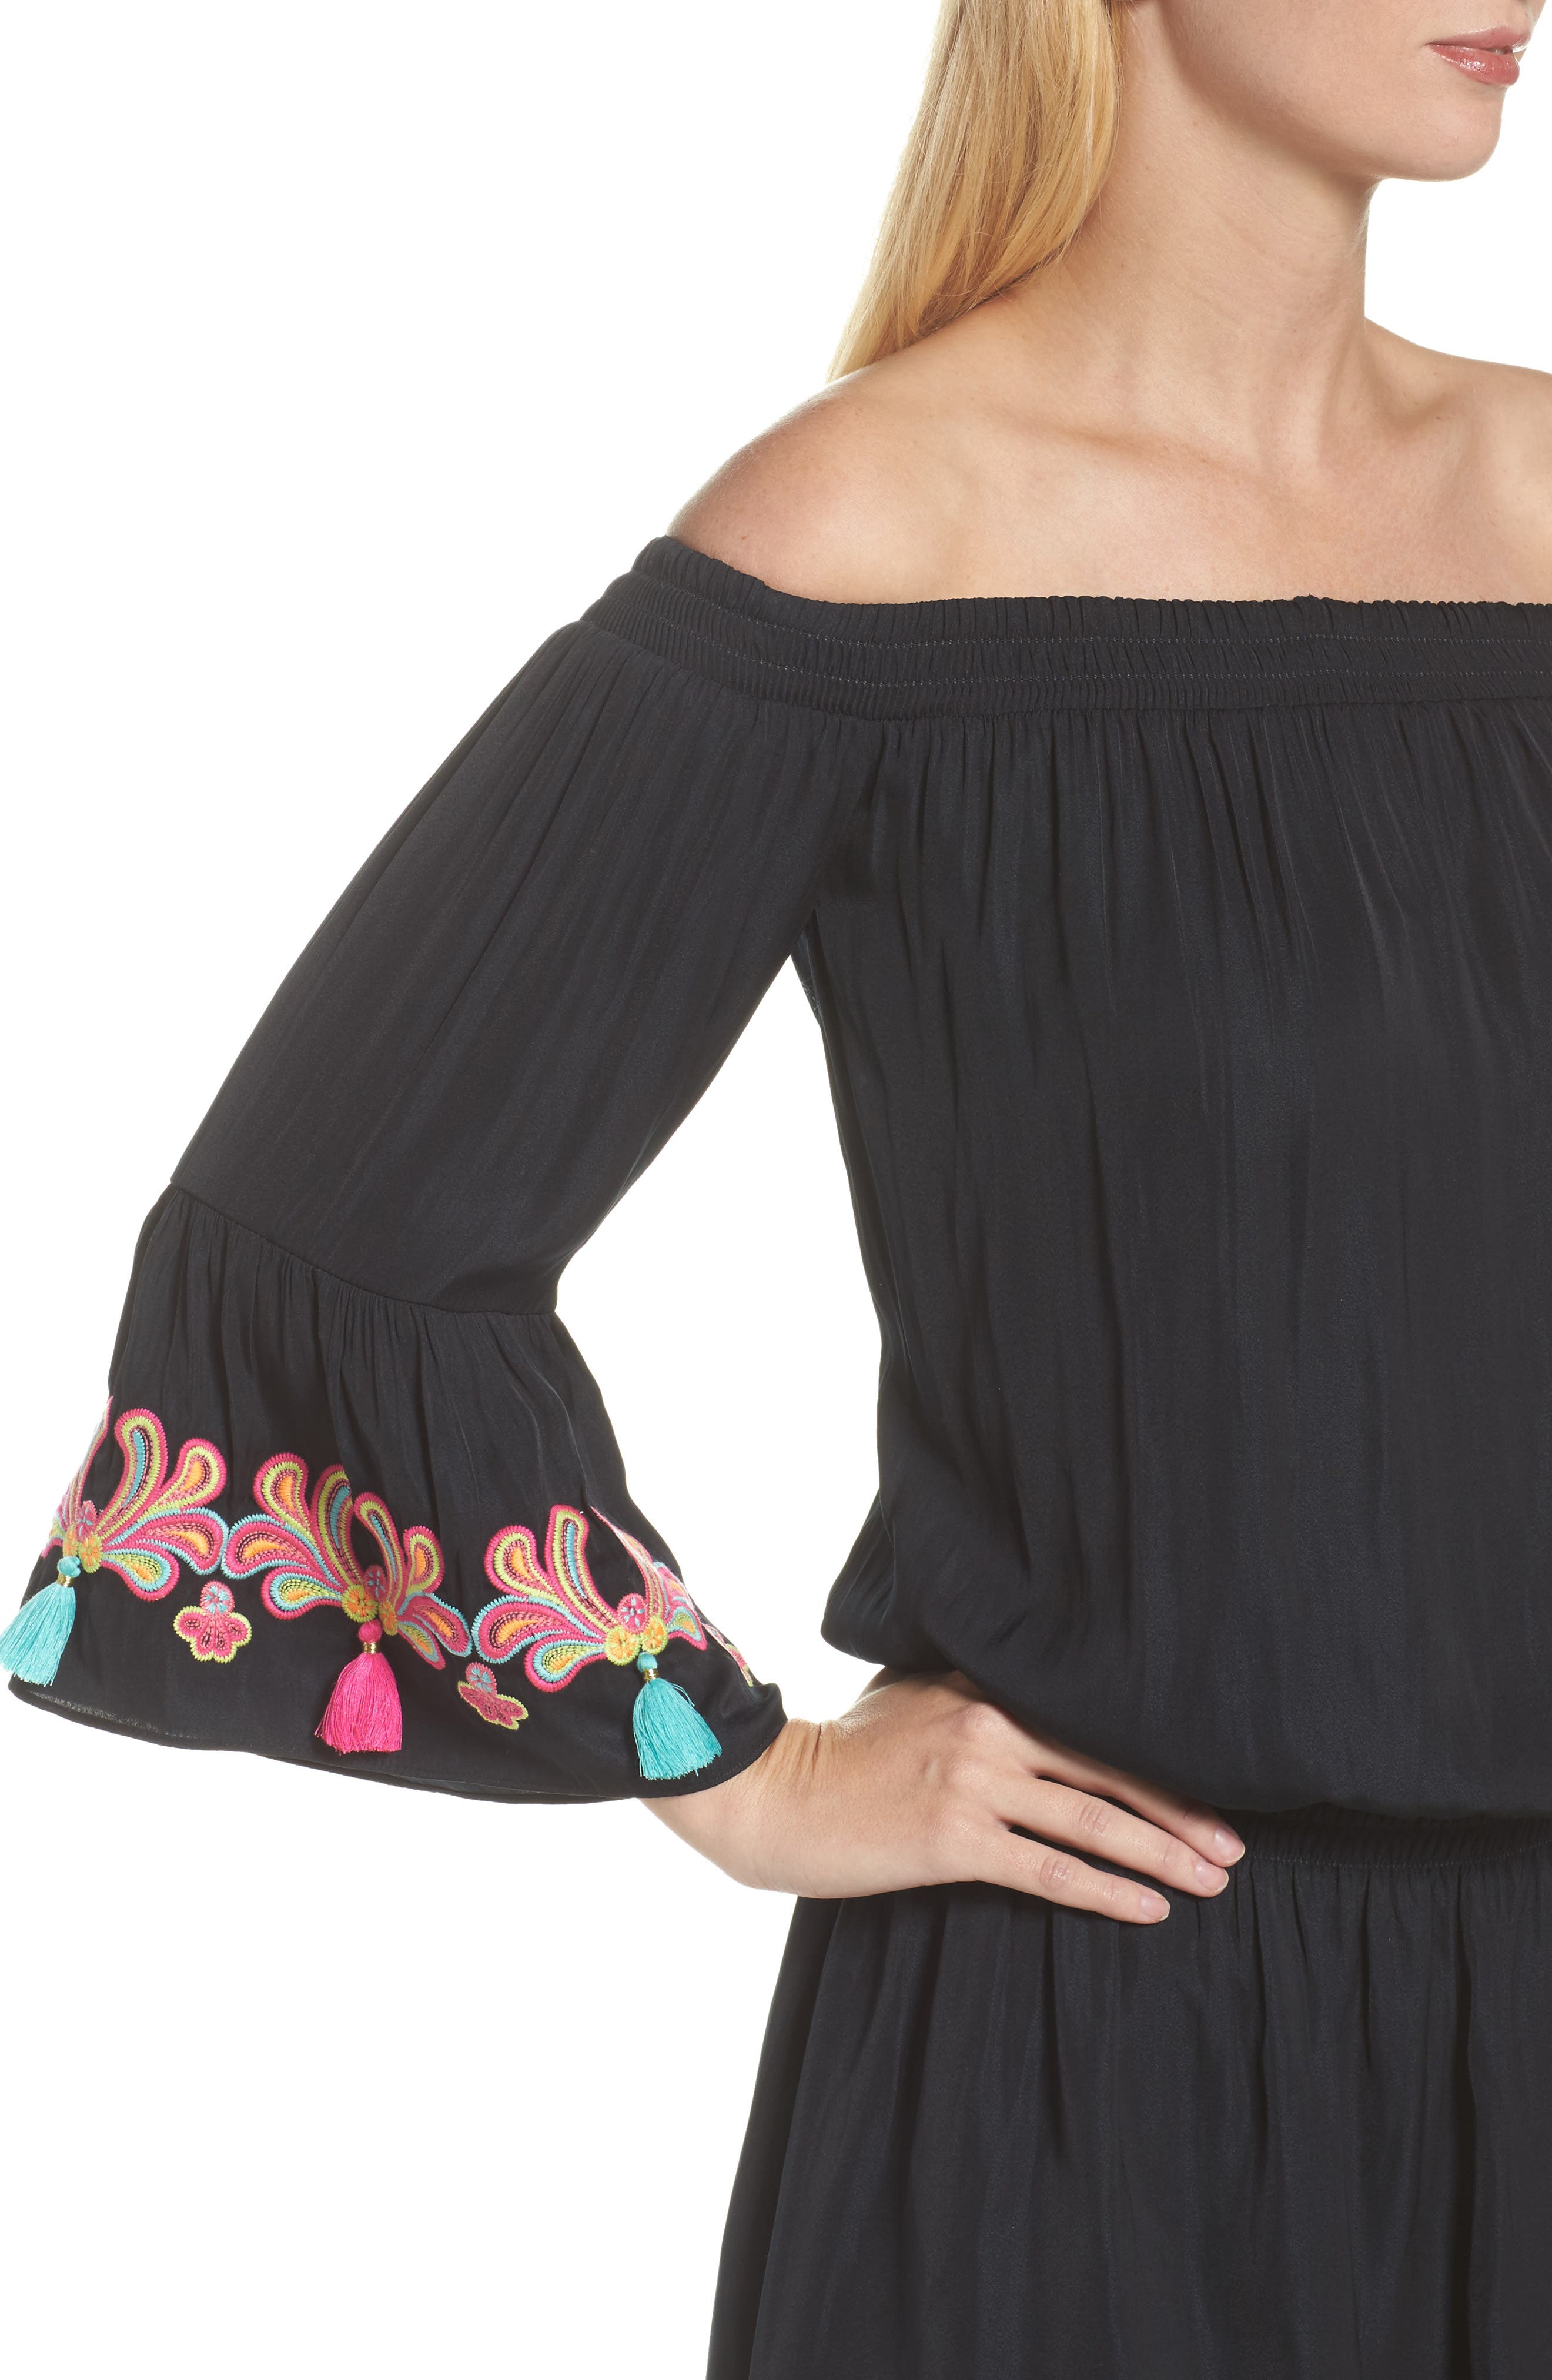 Polly Off the Shoulder Dress,                             Alternate thumbnail 4, color,